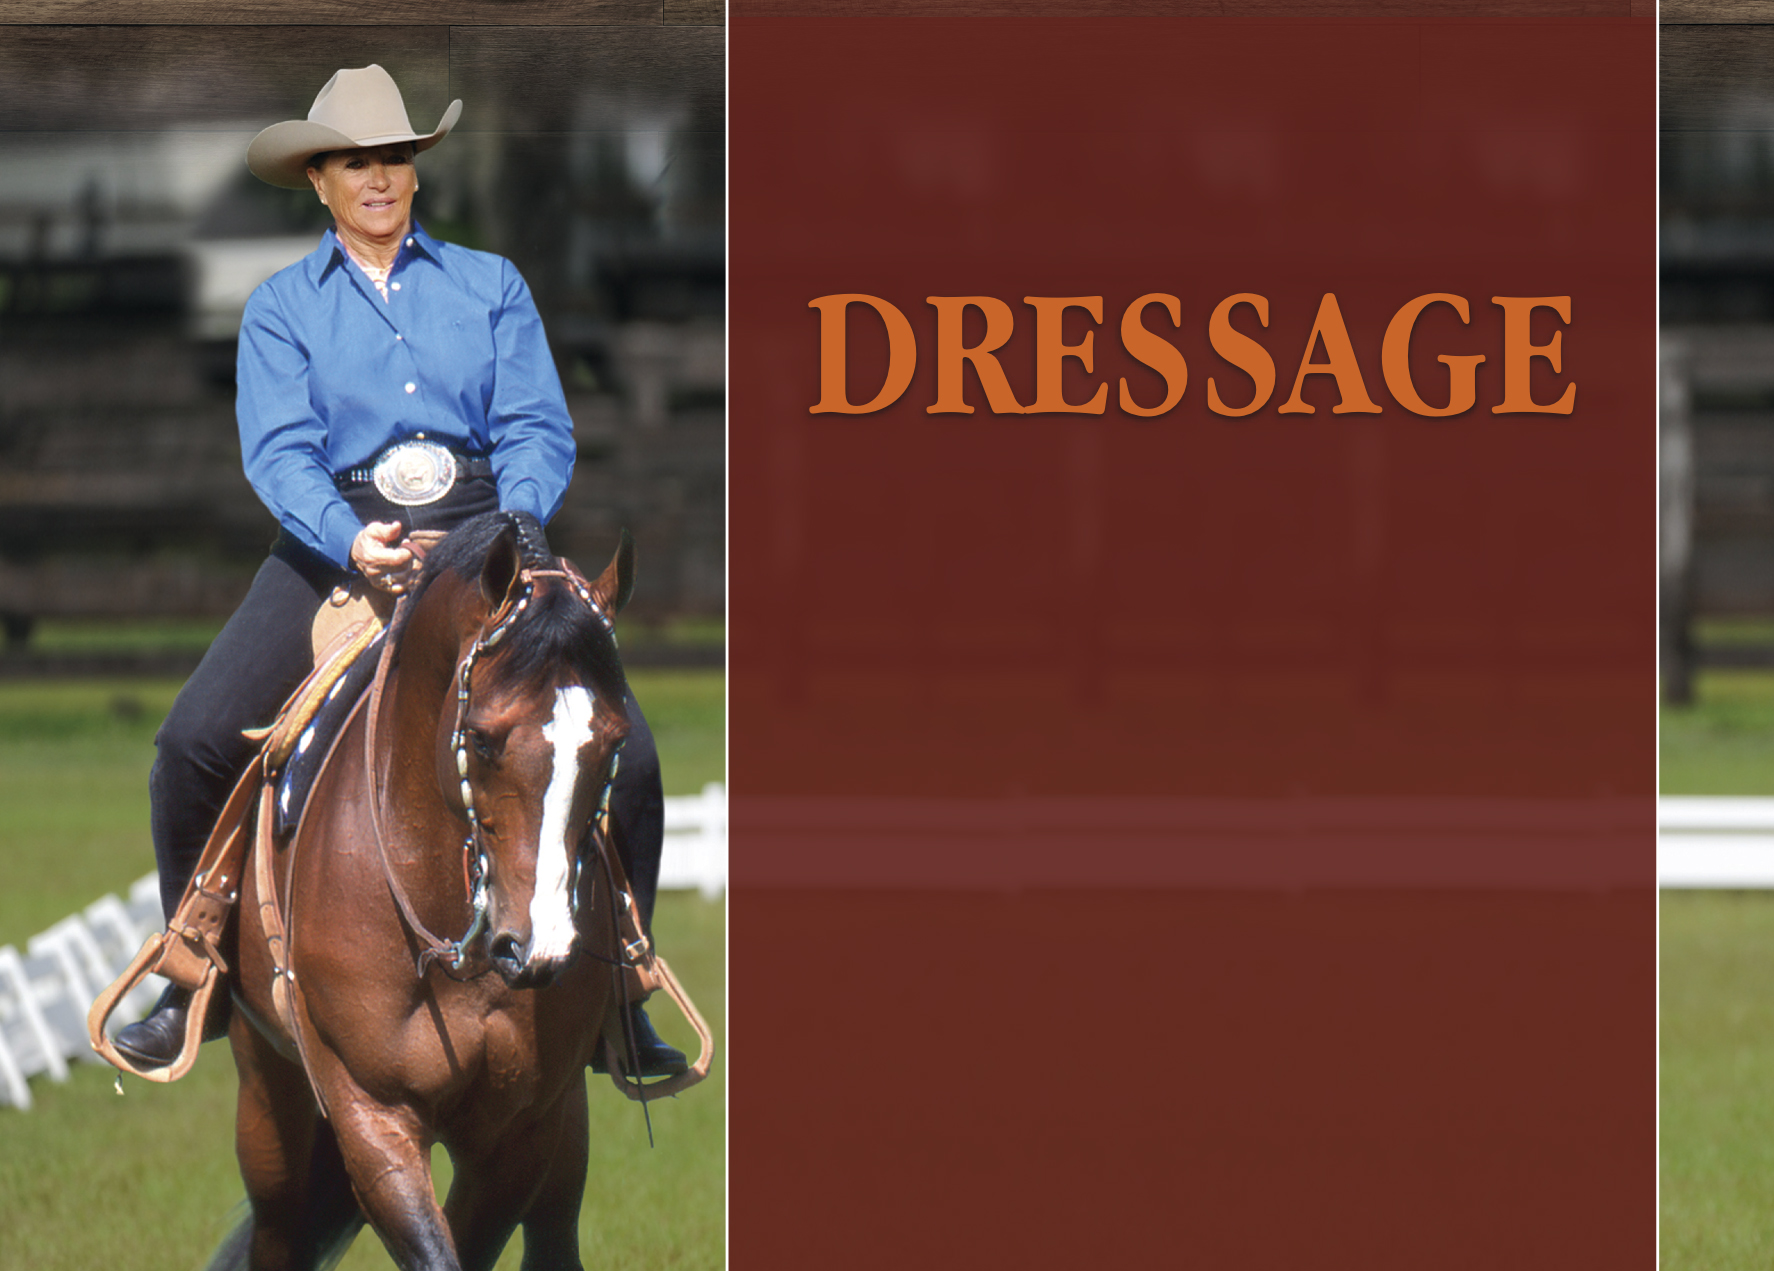 20 Years in the Making – Dressage Comes to the Forefront in AQHA